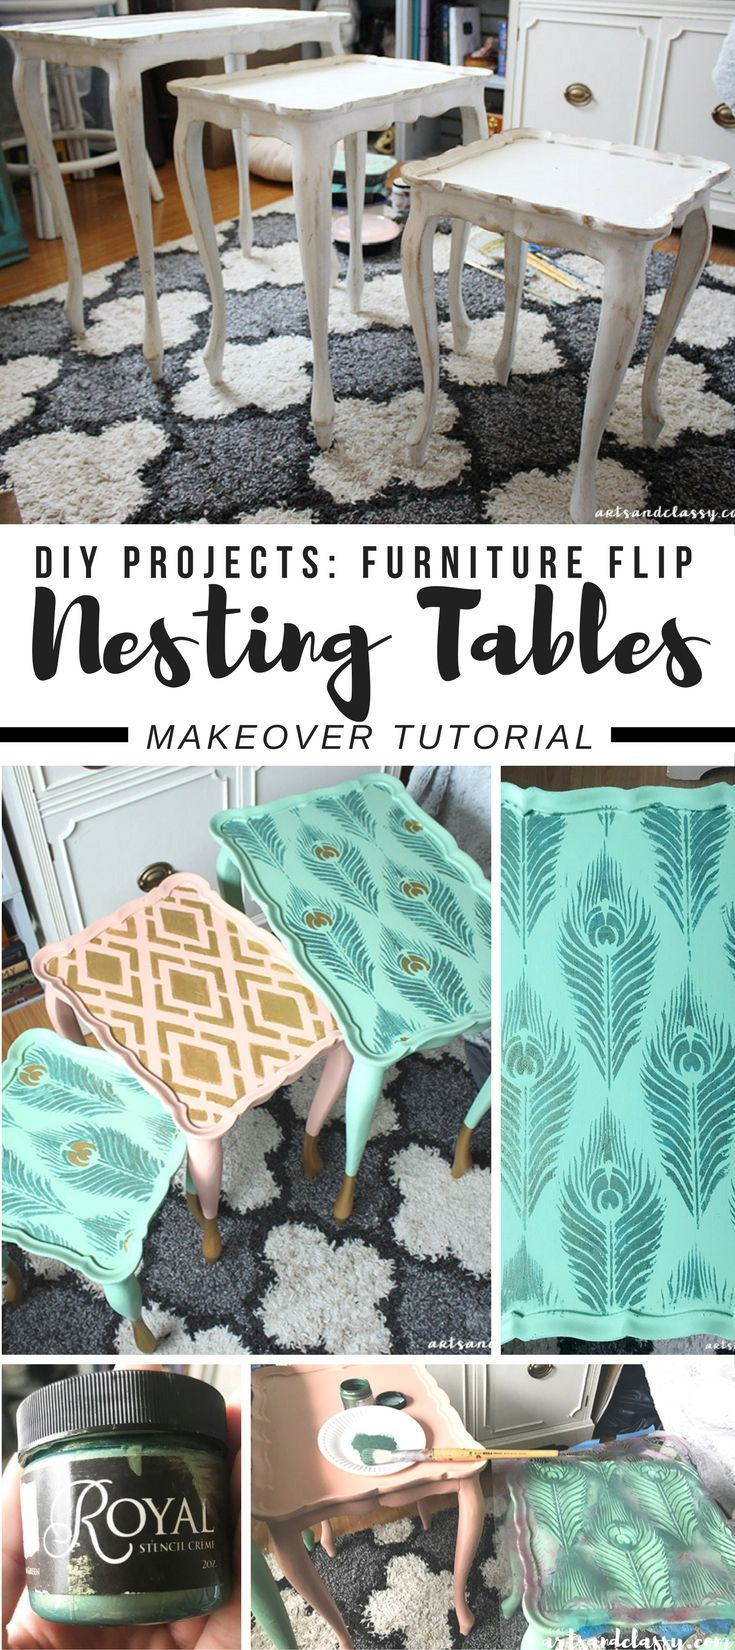 DIY Projects : Nesting Tables Get a Glam Makeover + Tutorial | Arts and Classy